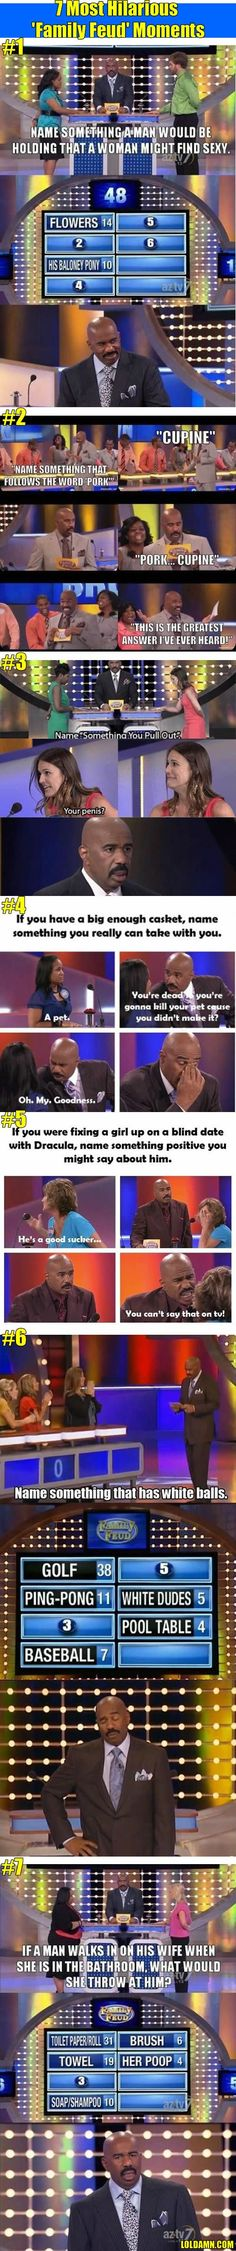 7 Most Hilarious 'Family Feud' Moments LOLOLOLOLOLOL.